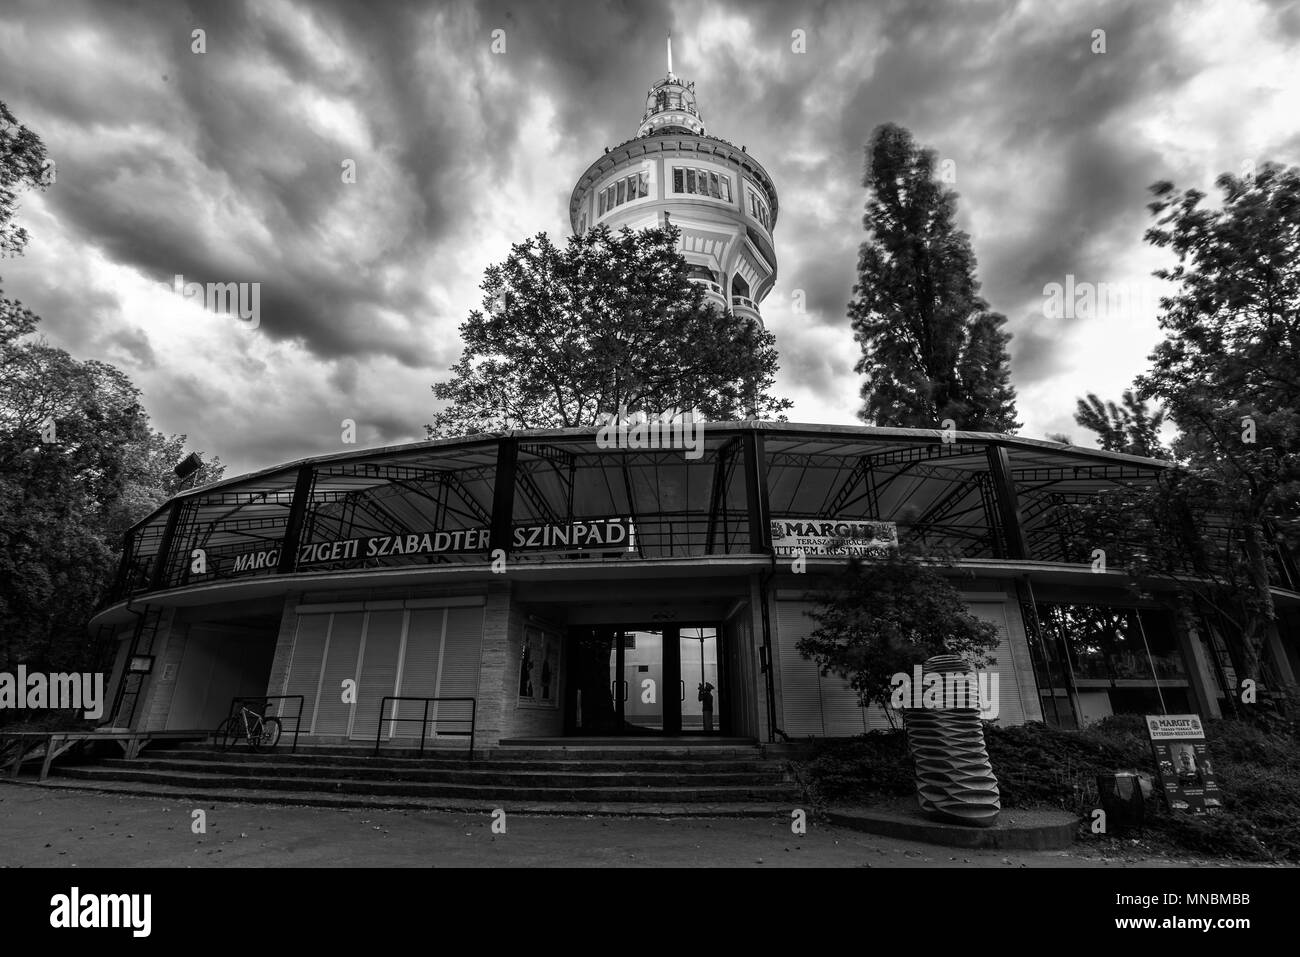 Water tower in Margaret Island, Budapest, Hungary - Stock Image